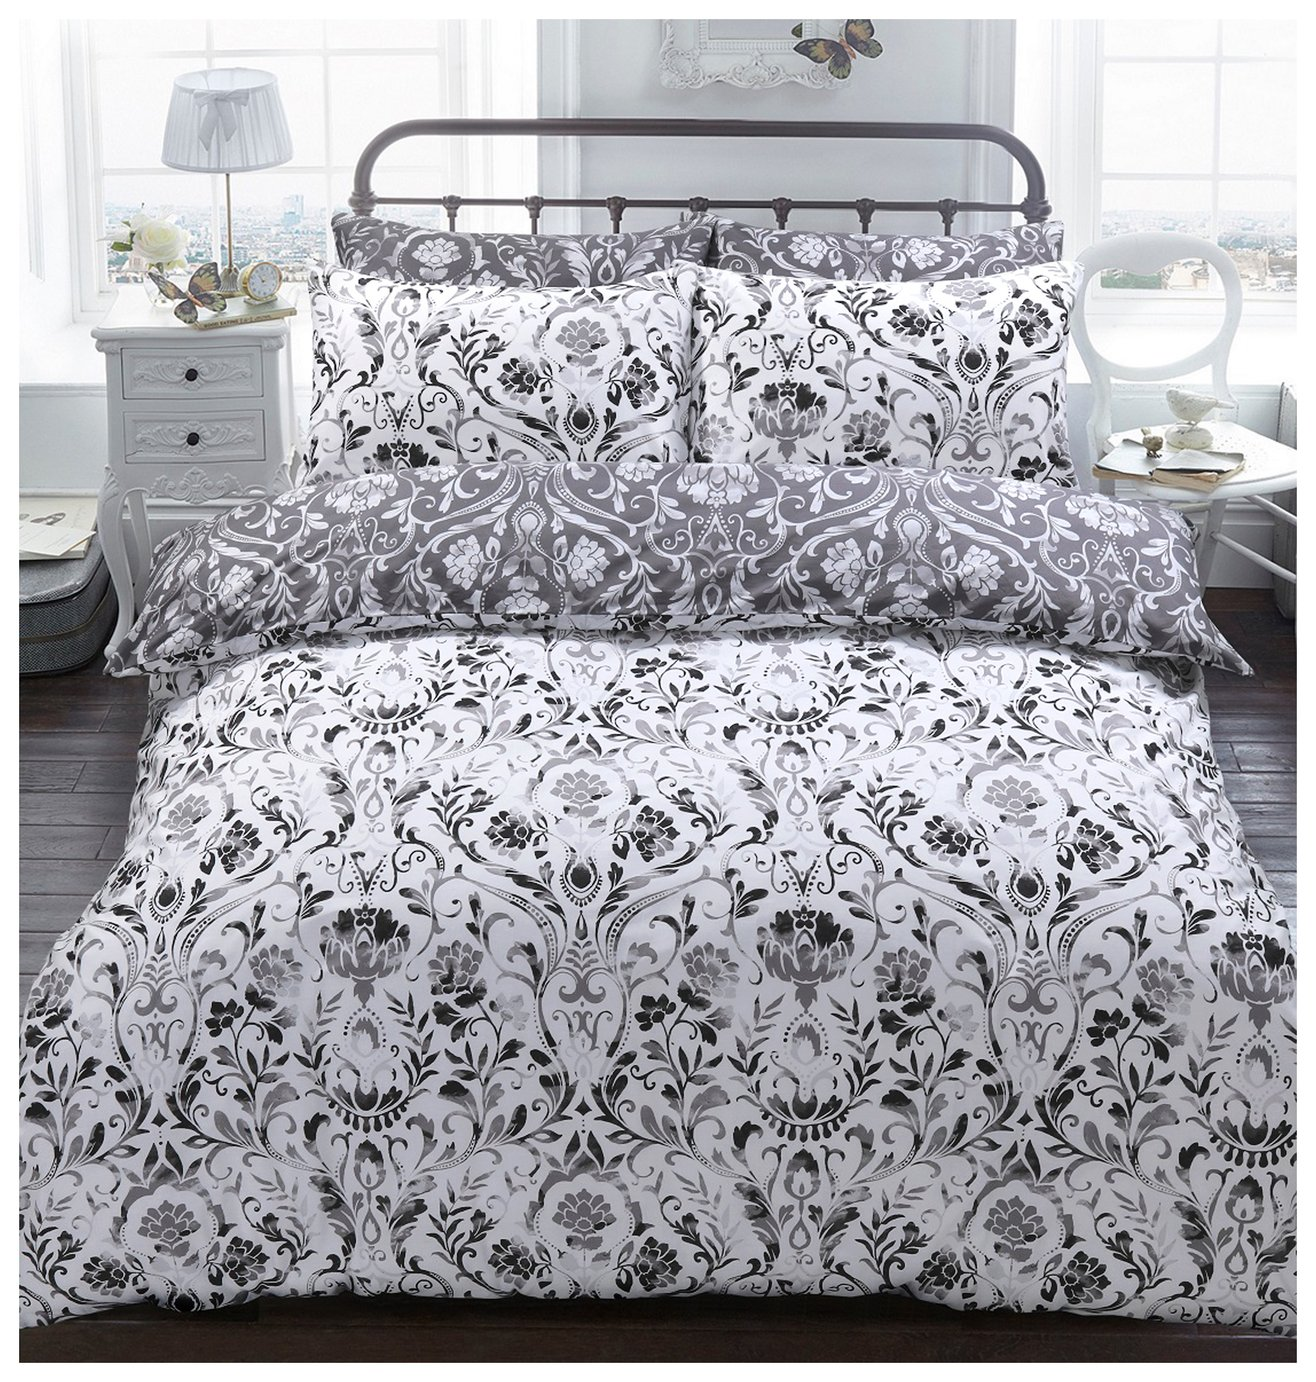 Argos Home Monochrome Painted Damask Bedding Set - Single